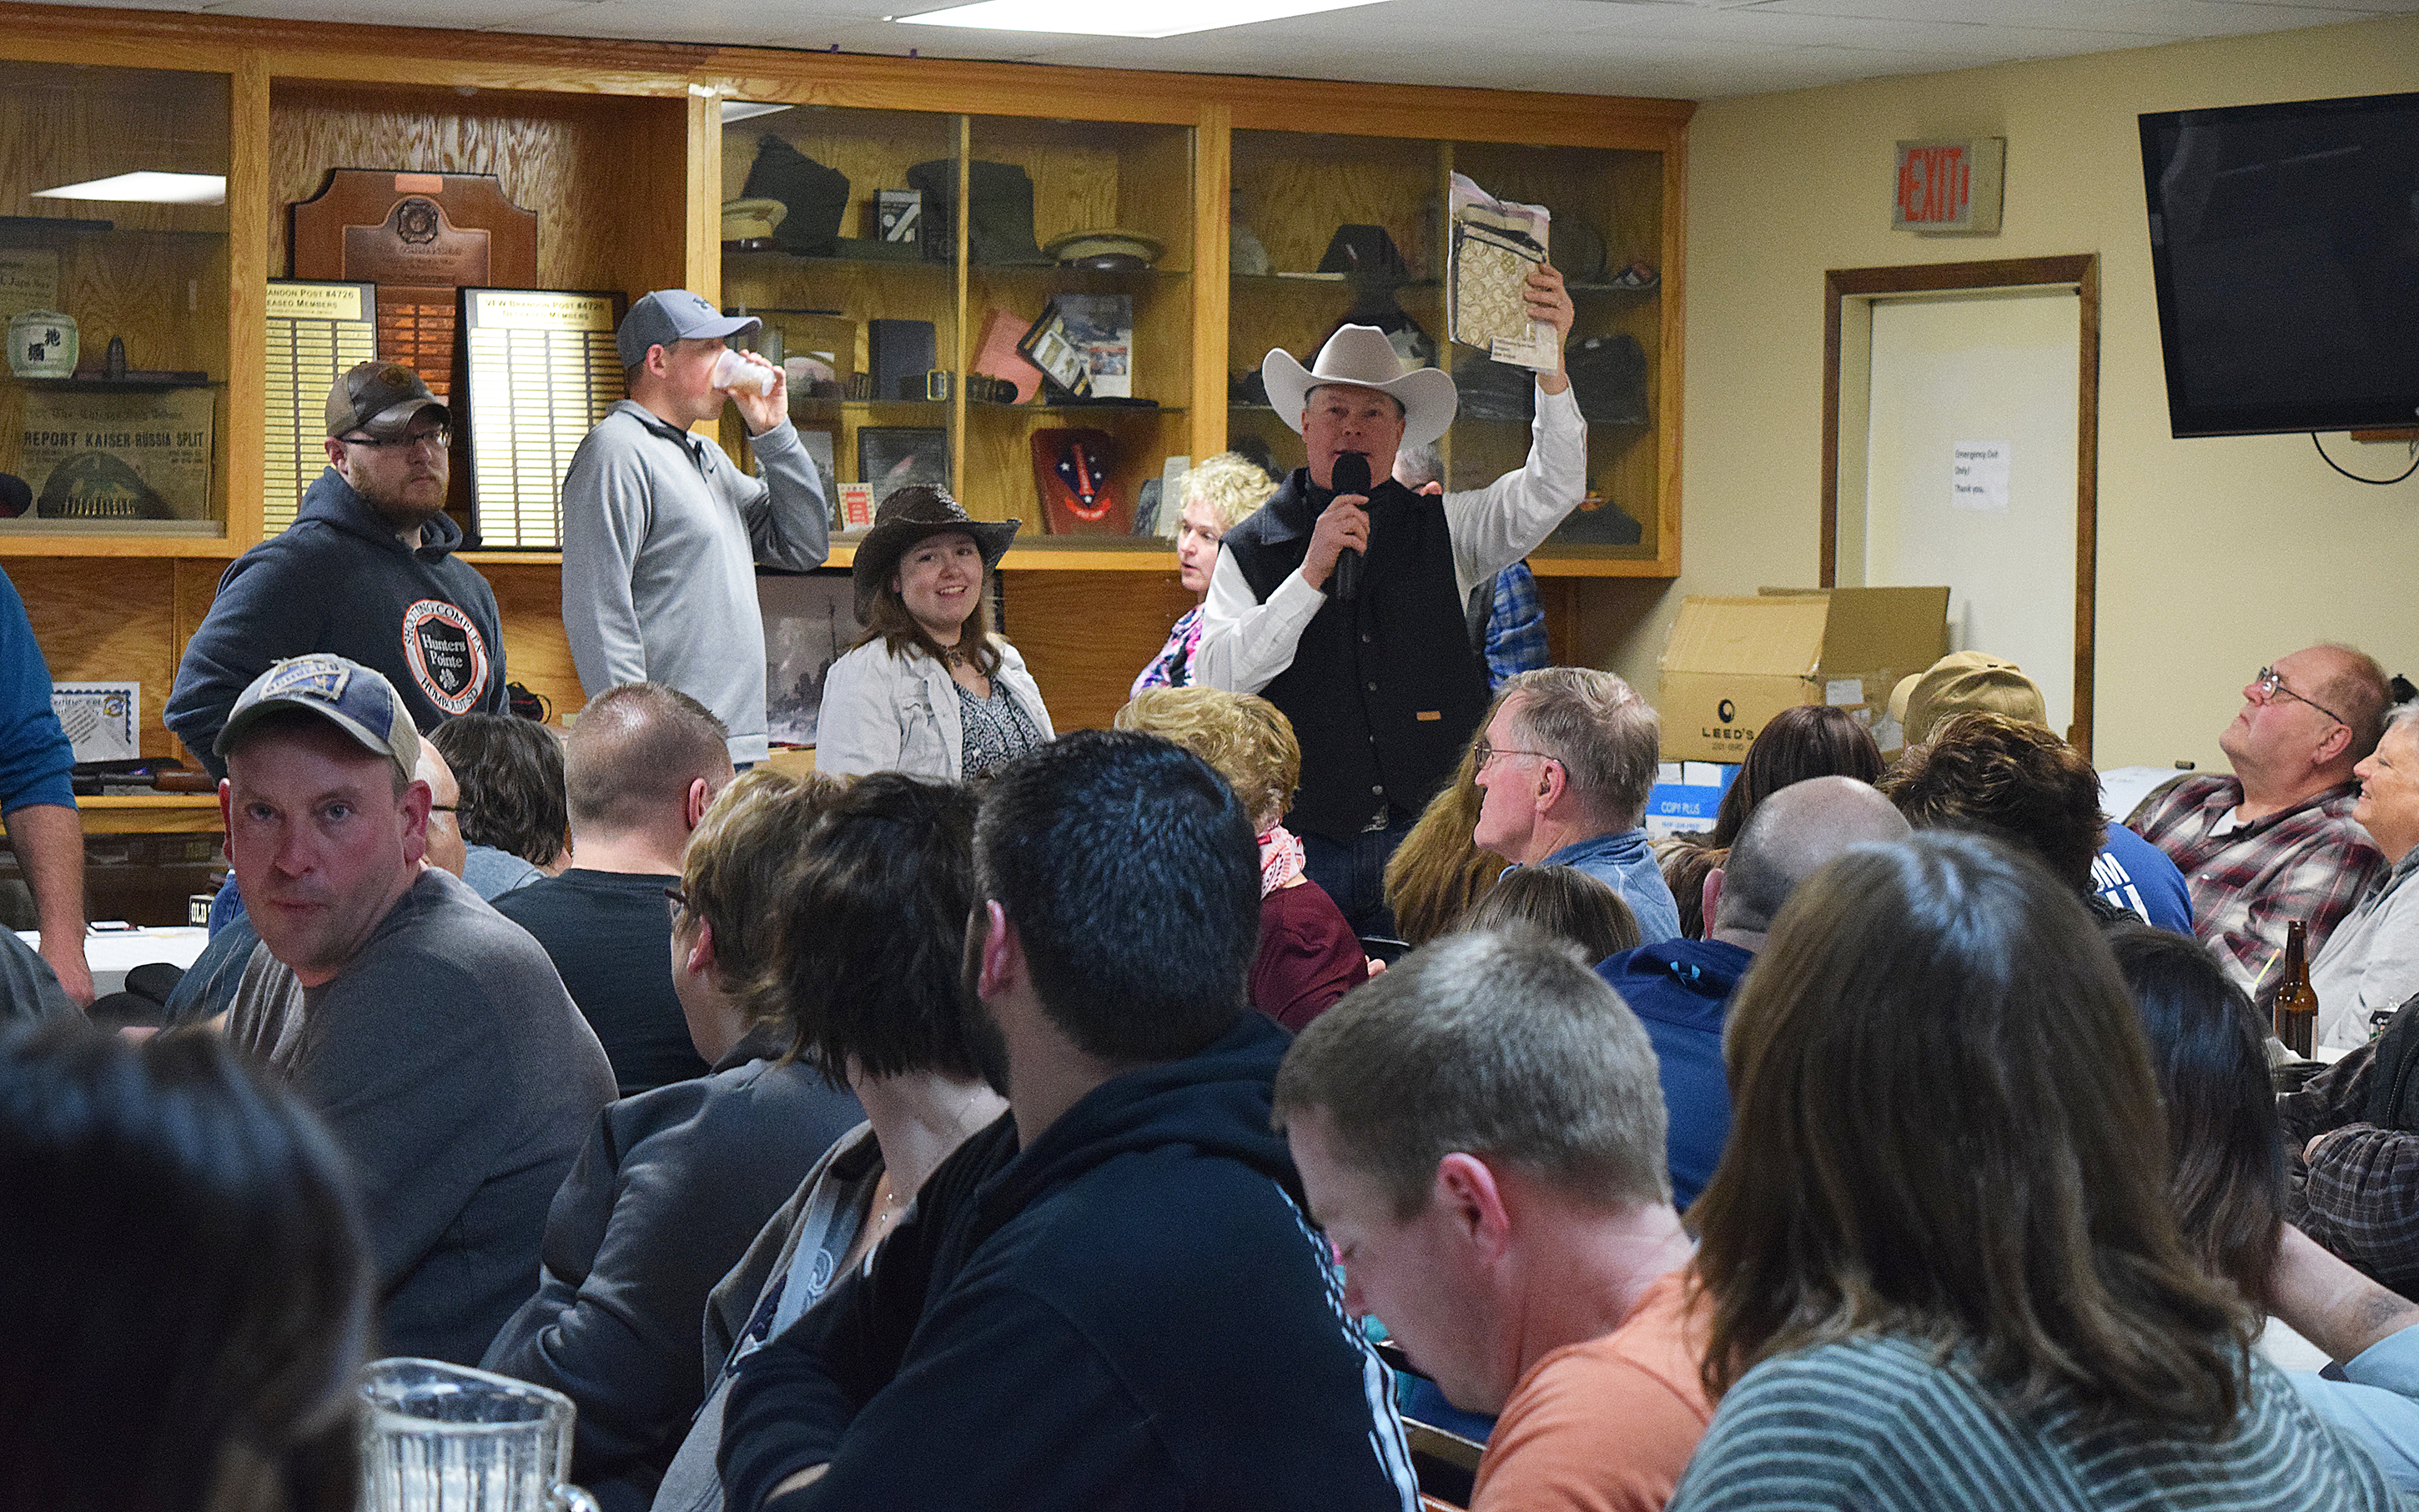 */It was another successful year for the Ed Polzine Youth Cancer Fund Wild Game Feed. An estimated 200 people dined on more than 400 pounds of elk, antelope, venison, halibut, alligator and the like, supported silent and live auctions and raffles Saturday at the Brandon VFW. As always, proceeds from the 34th annual event will be shared with local children who have cancer and other life-impacting events. <strong>Jill Meier/BV Journal</strong>